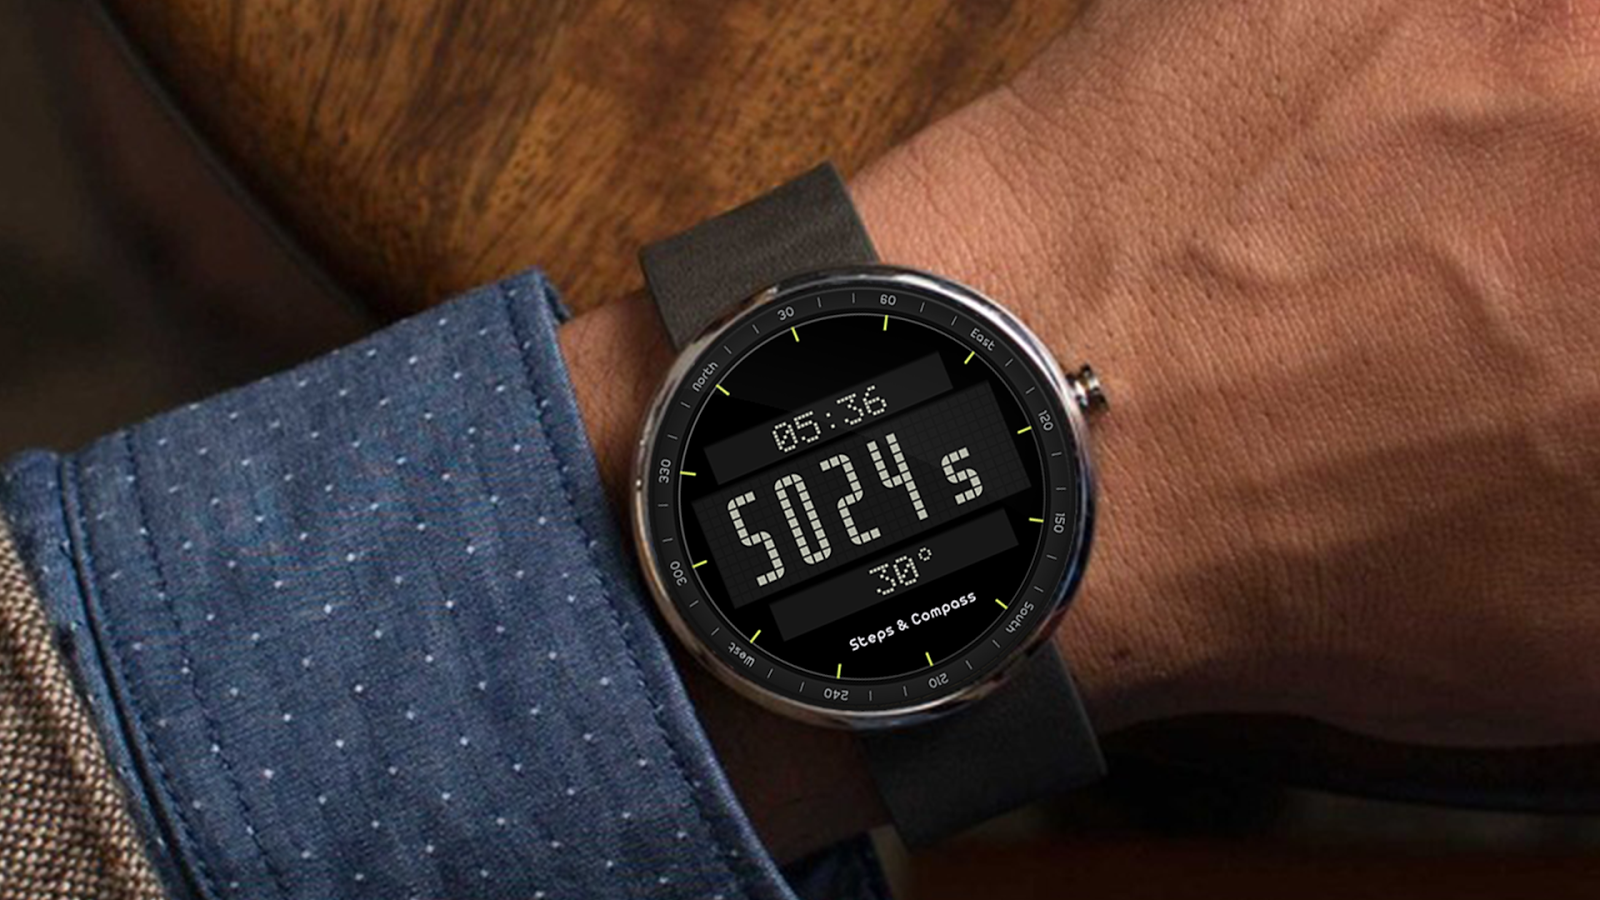 Facer android wear - Army Watch Face Screenshot